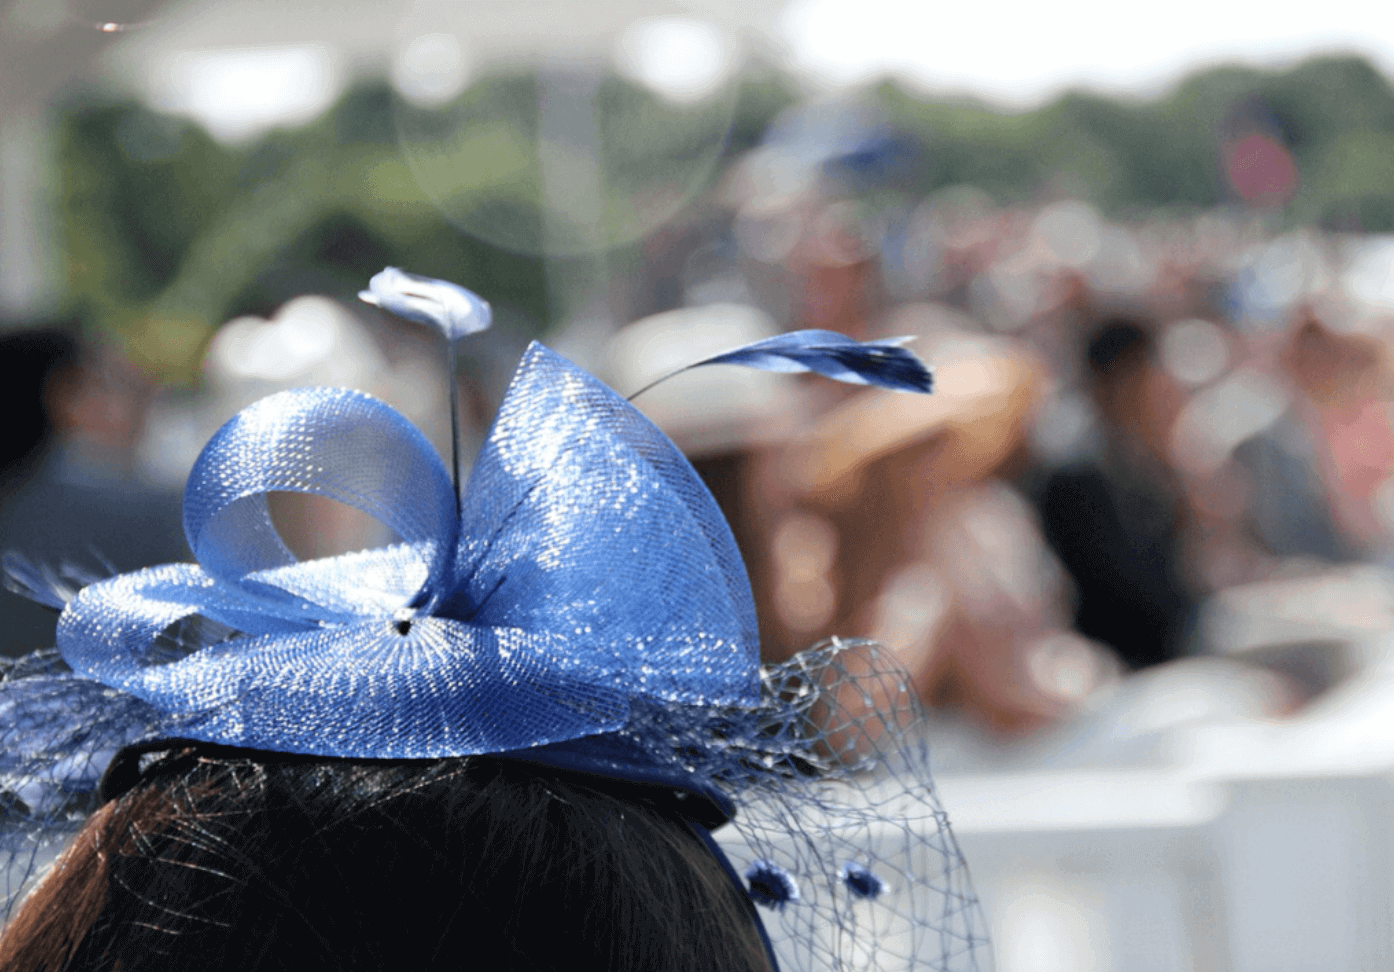 Woman wearing a blue headpiece to a race